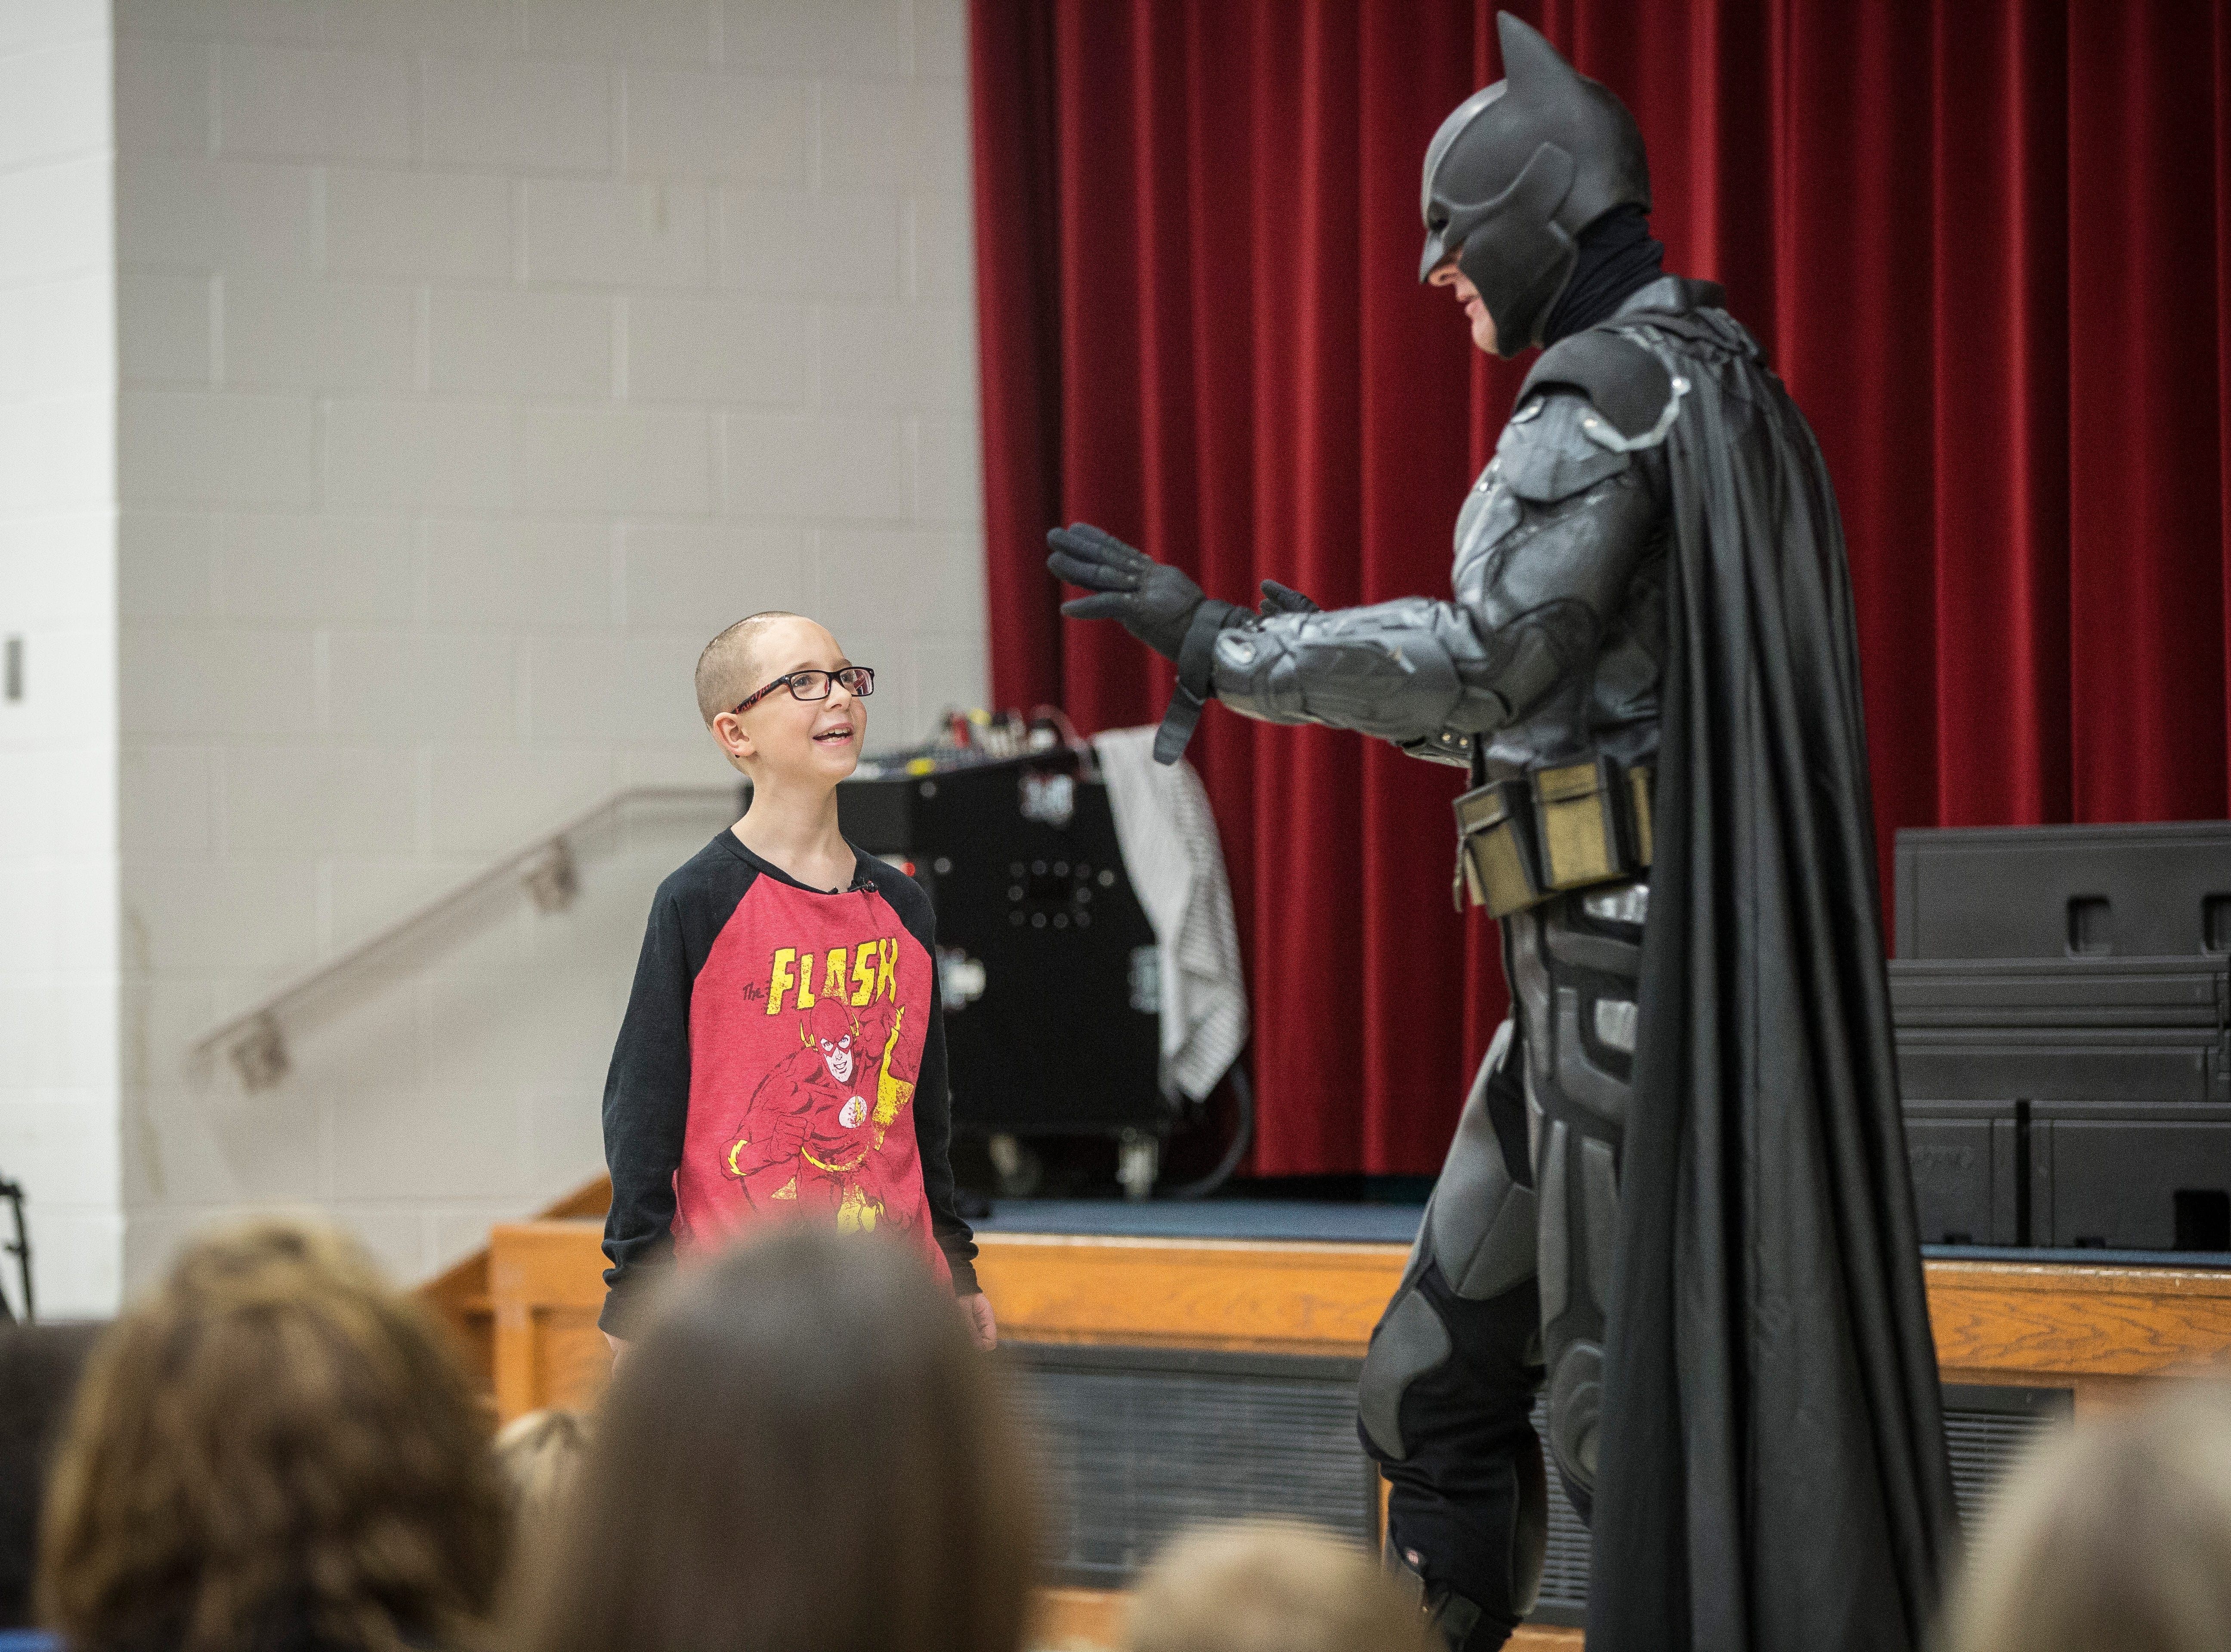 Christian Daugherty, a young Albany boy who was diagnosed with brain cancer, gets to meet Batman on Monday at Albany Elementary. Daugherty has been battling a rare form of brain cancer for nearly a year.